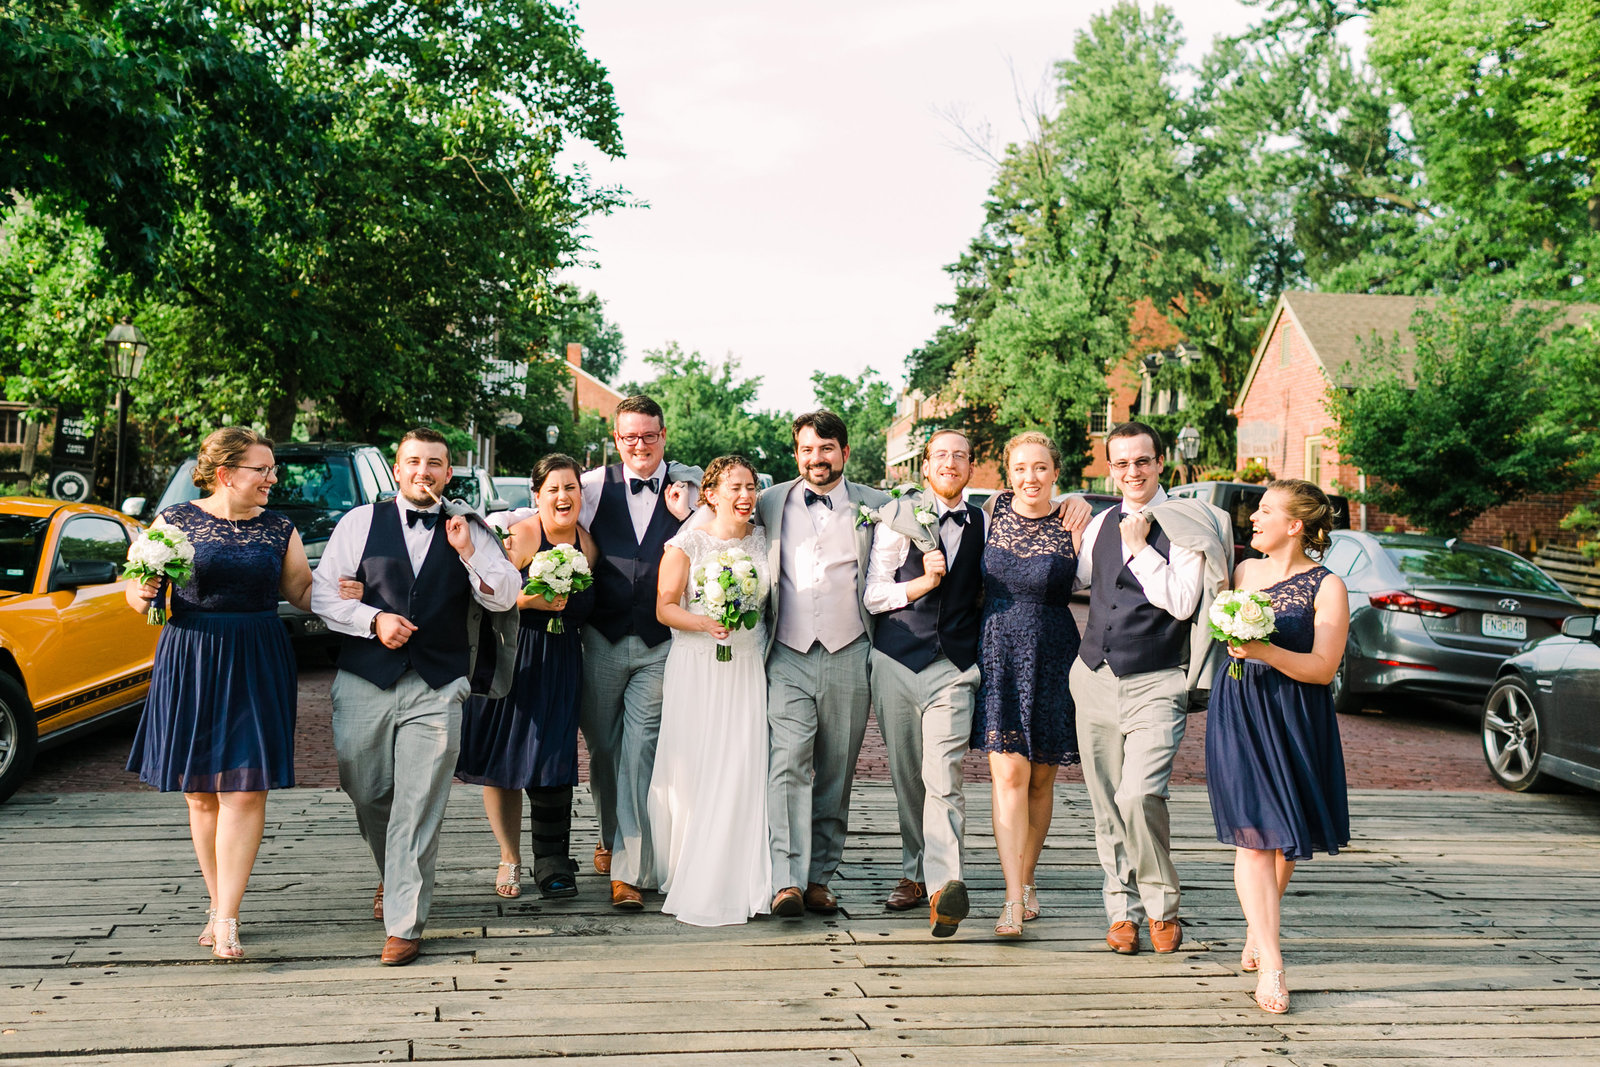 This fun wedding party walks down the street arm in arm down Historic Main Street in St. Charles